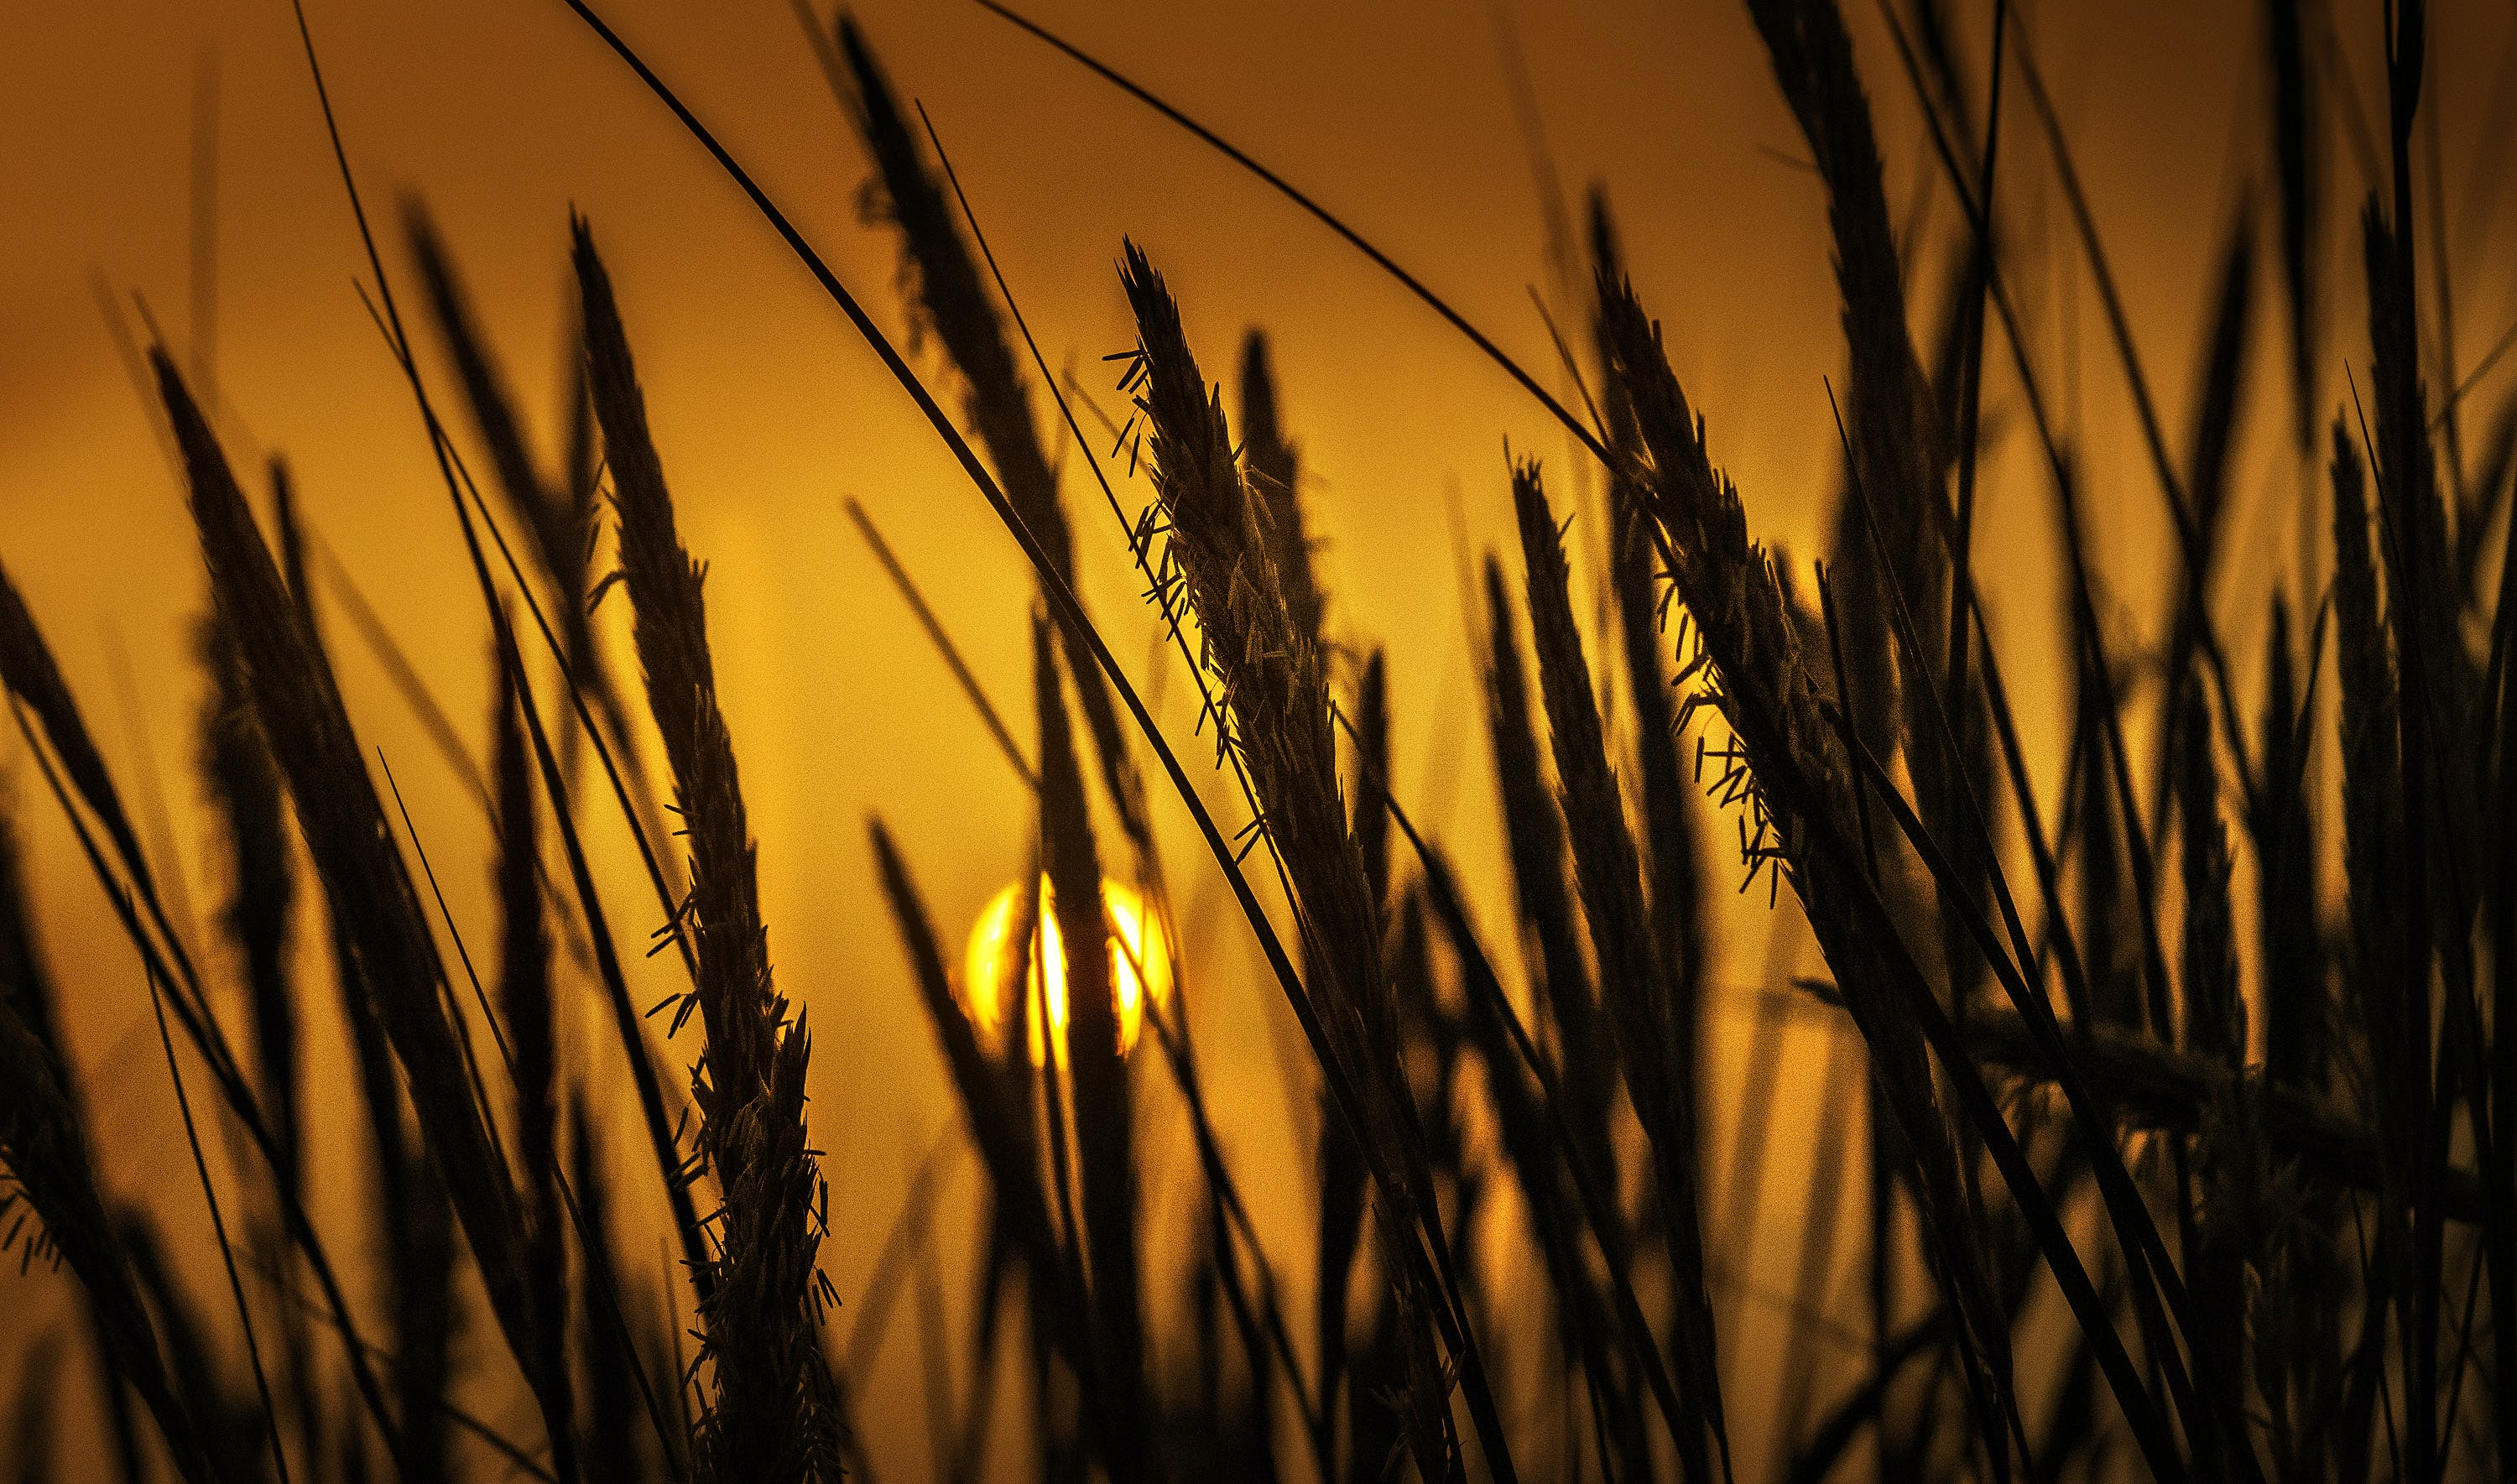 Silhouette Photo Of Wheat Plants